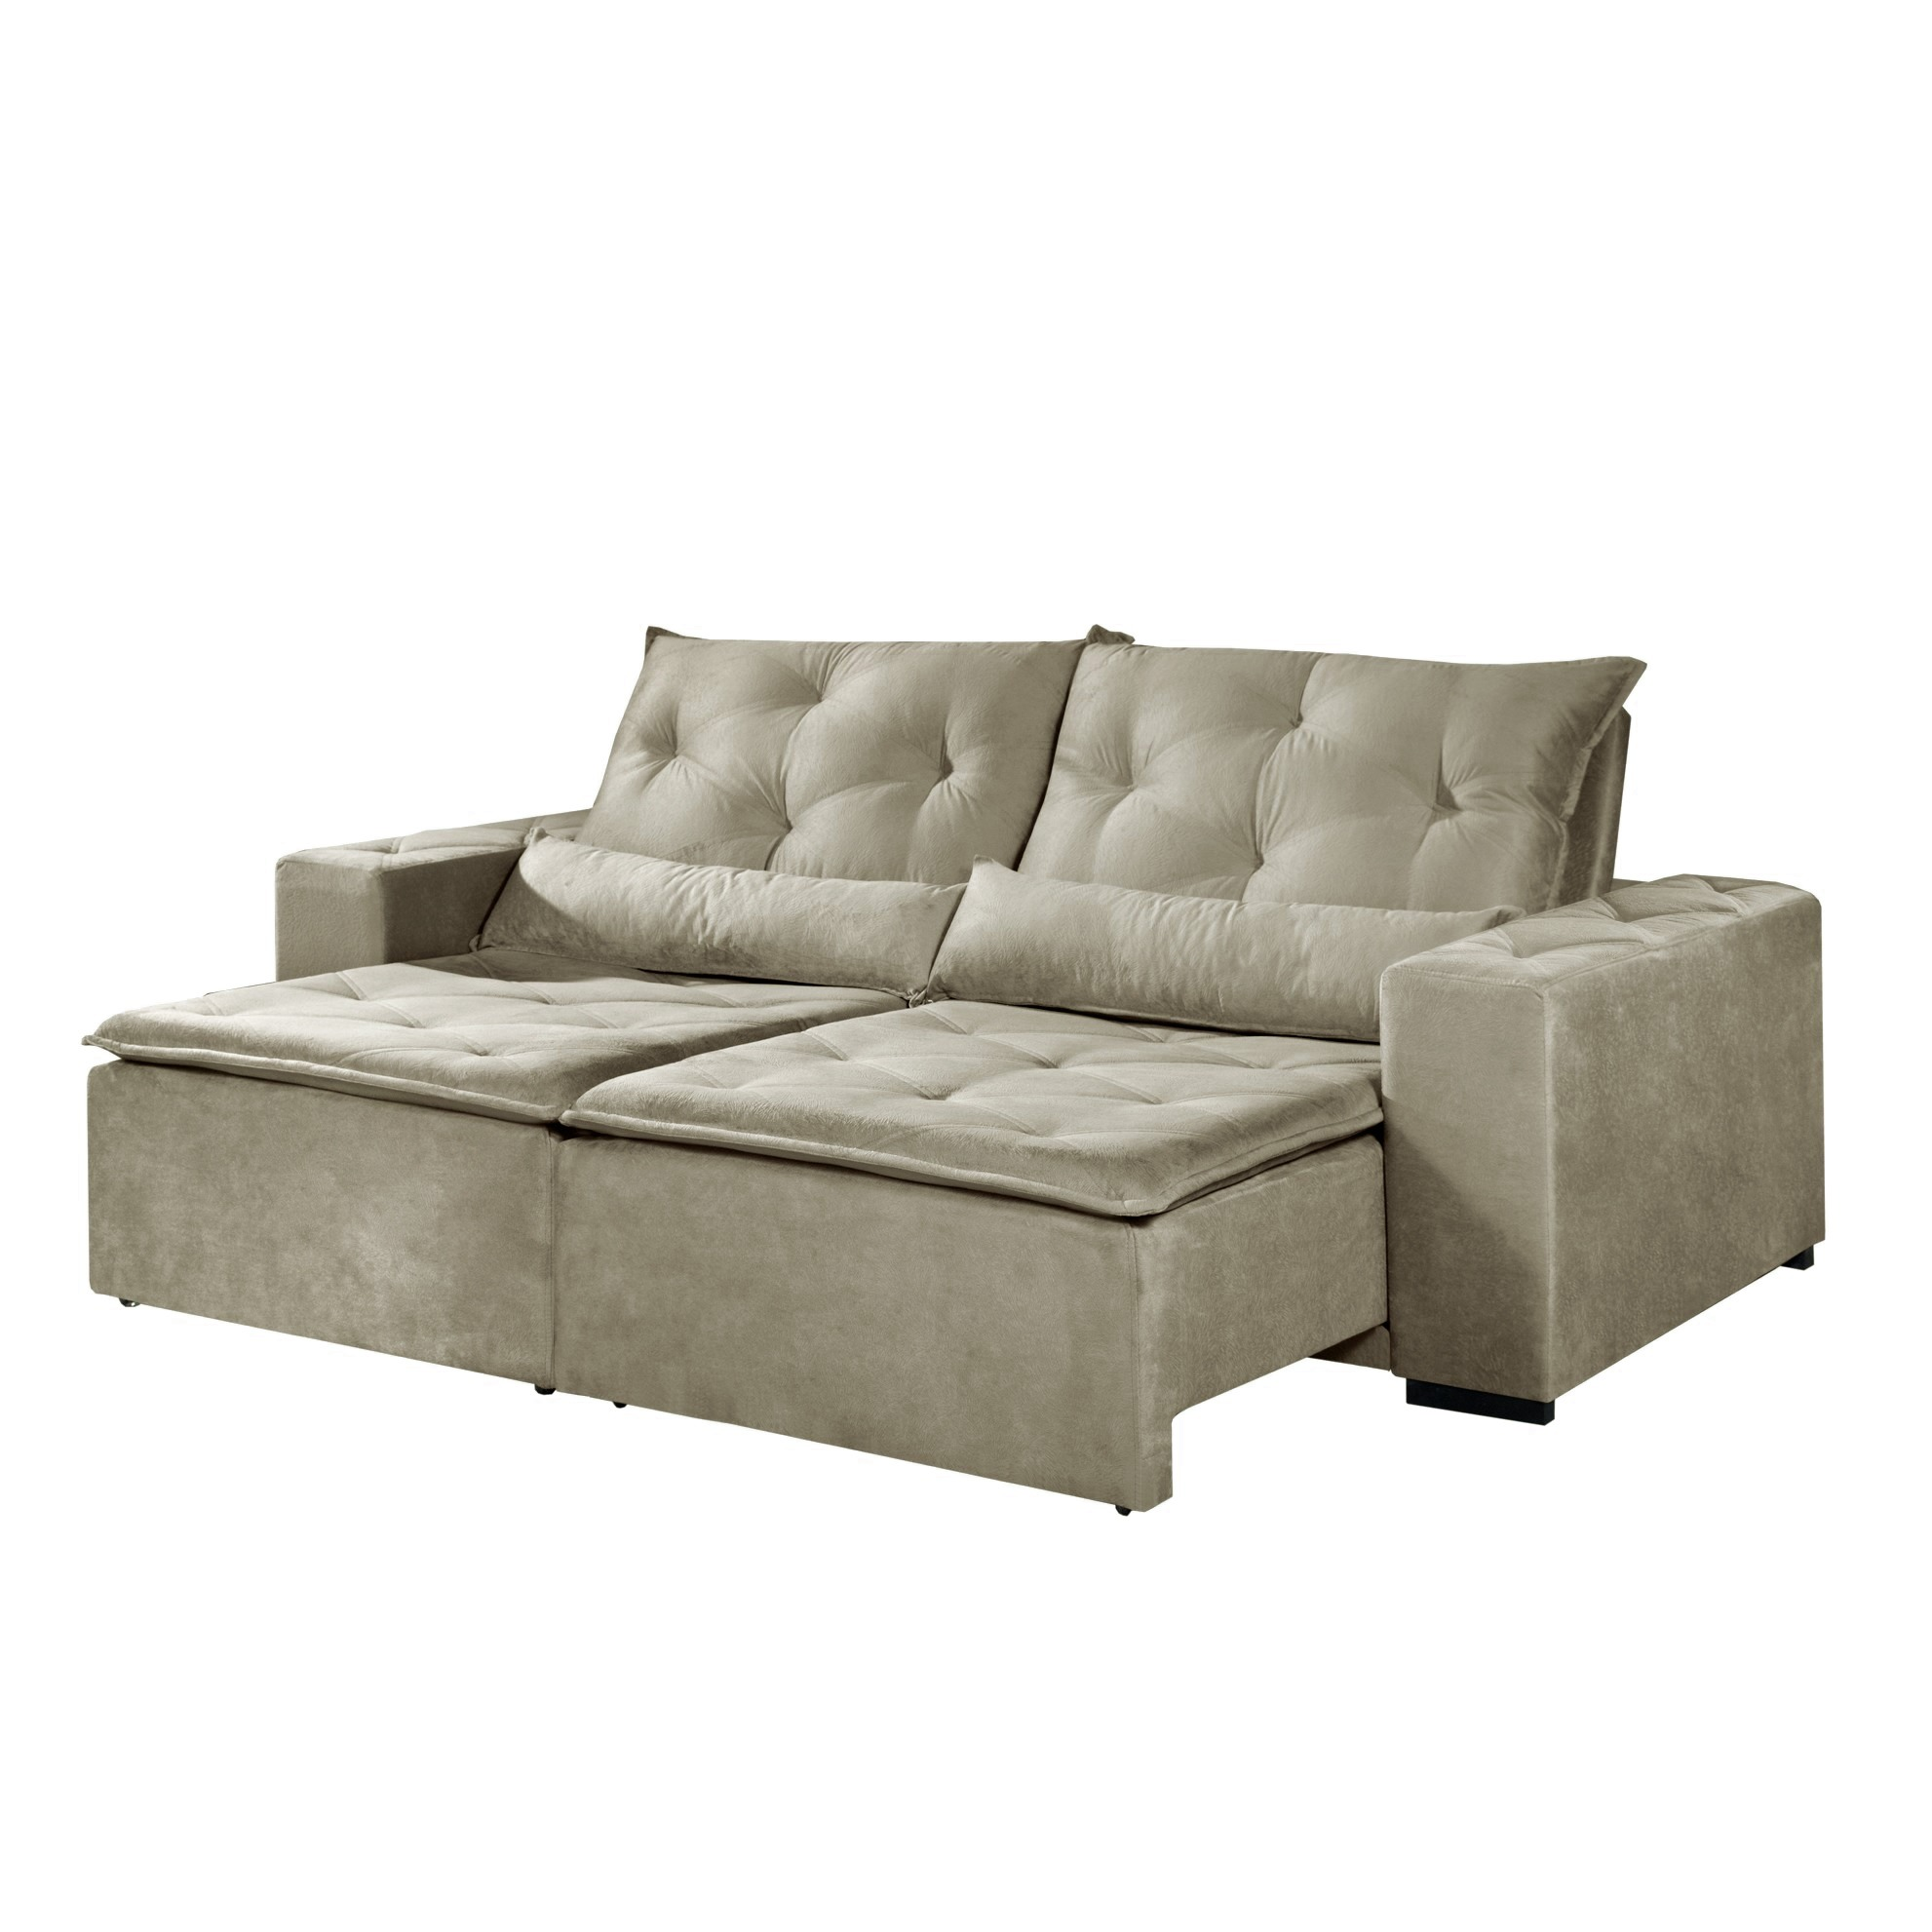 Sofa Retratil Reclinavel 2 Lugares Macae Suede 230 cm Bege - Estofart